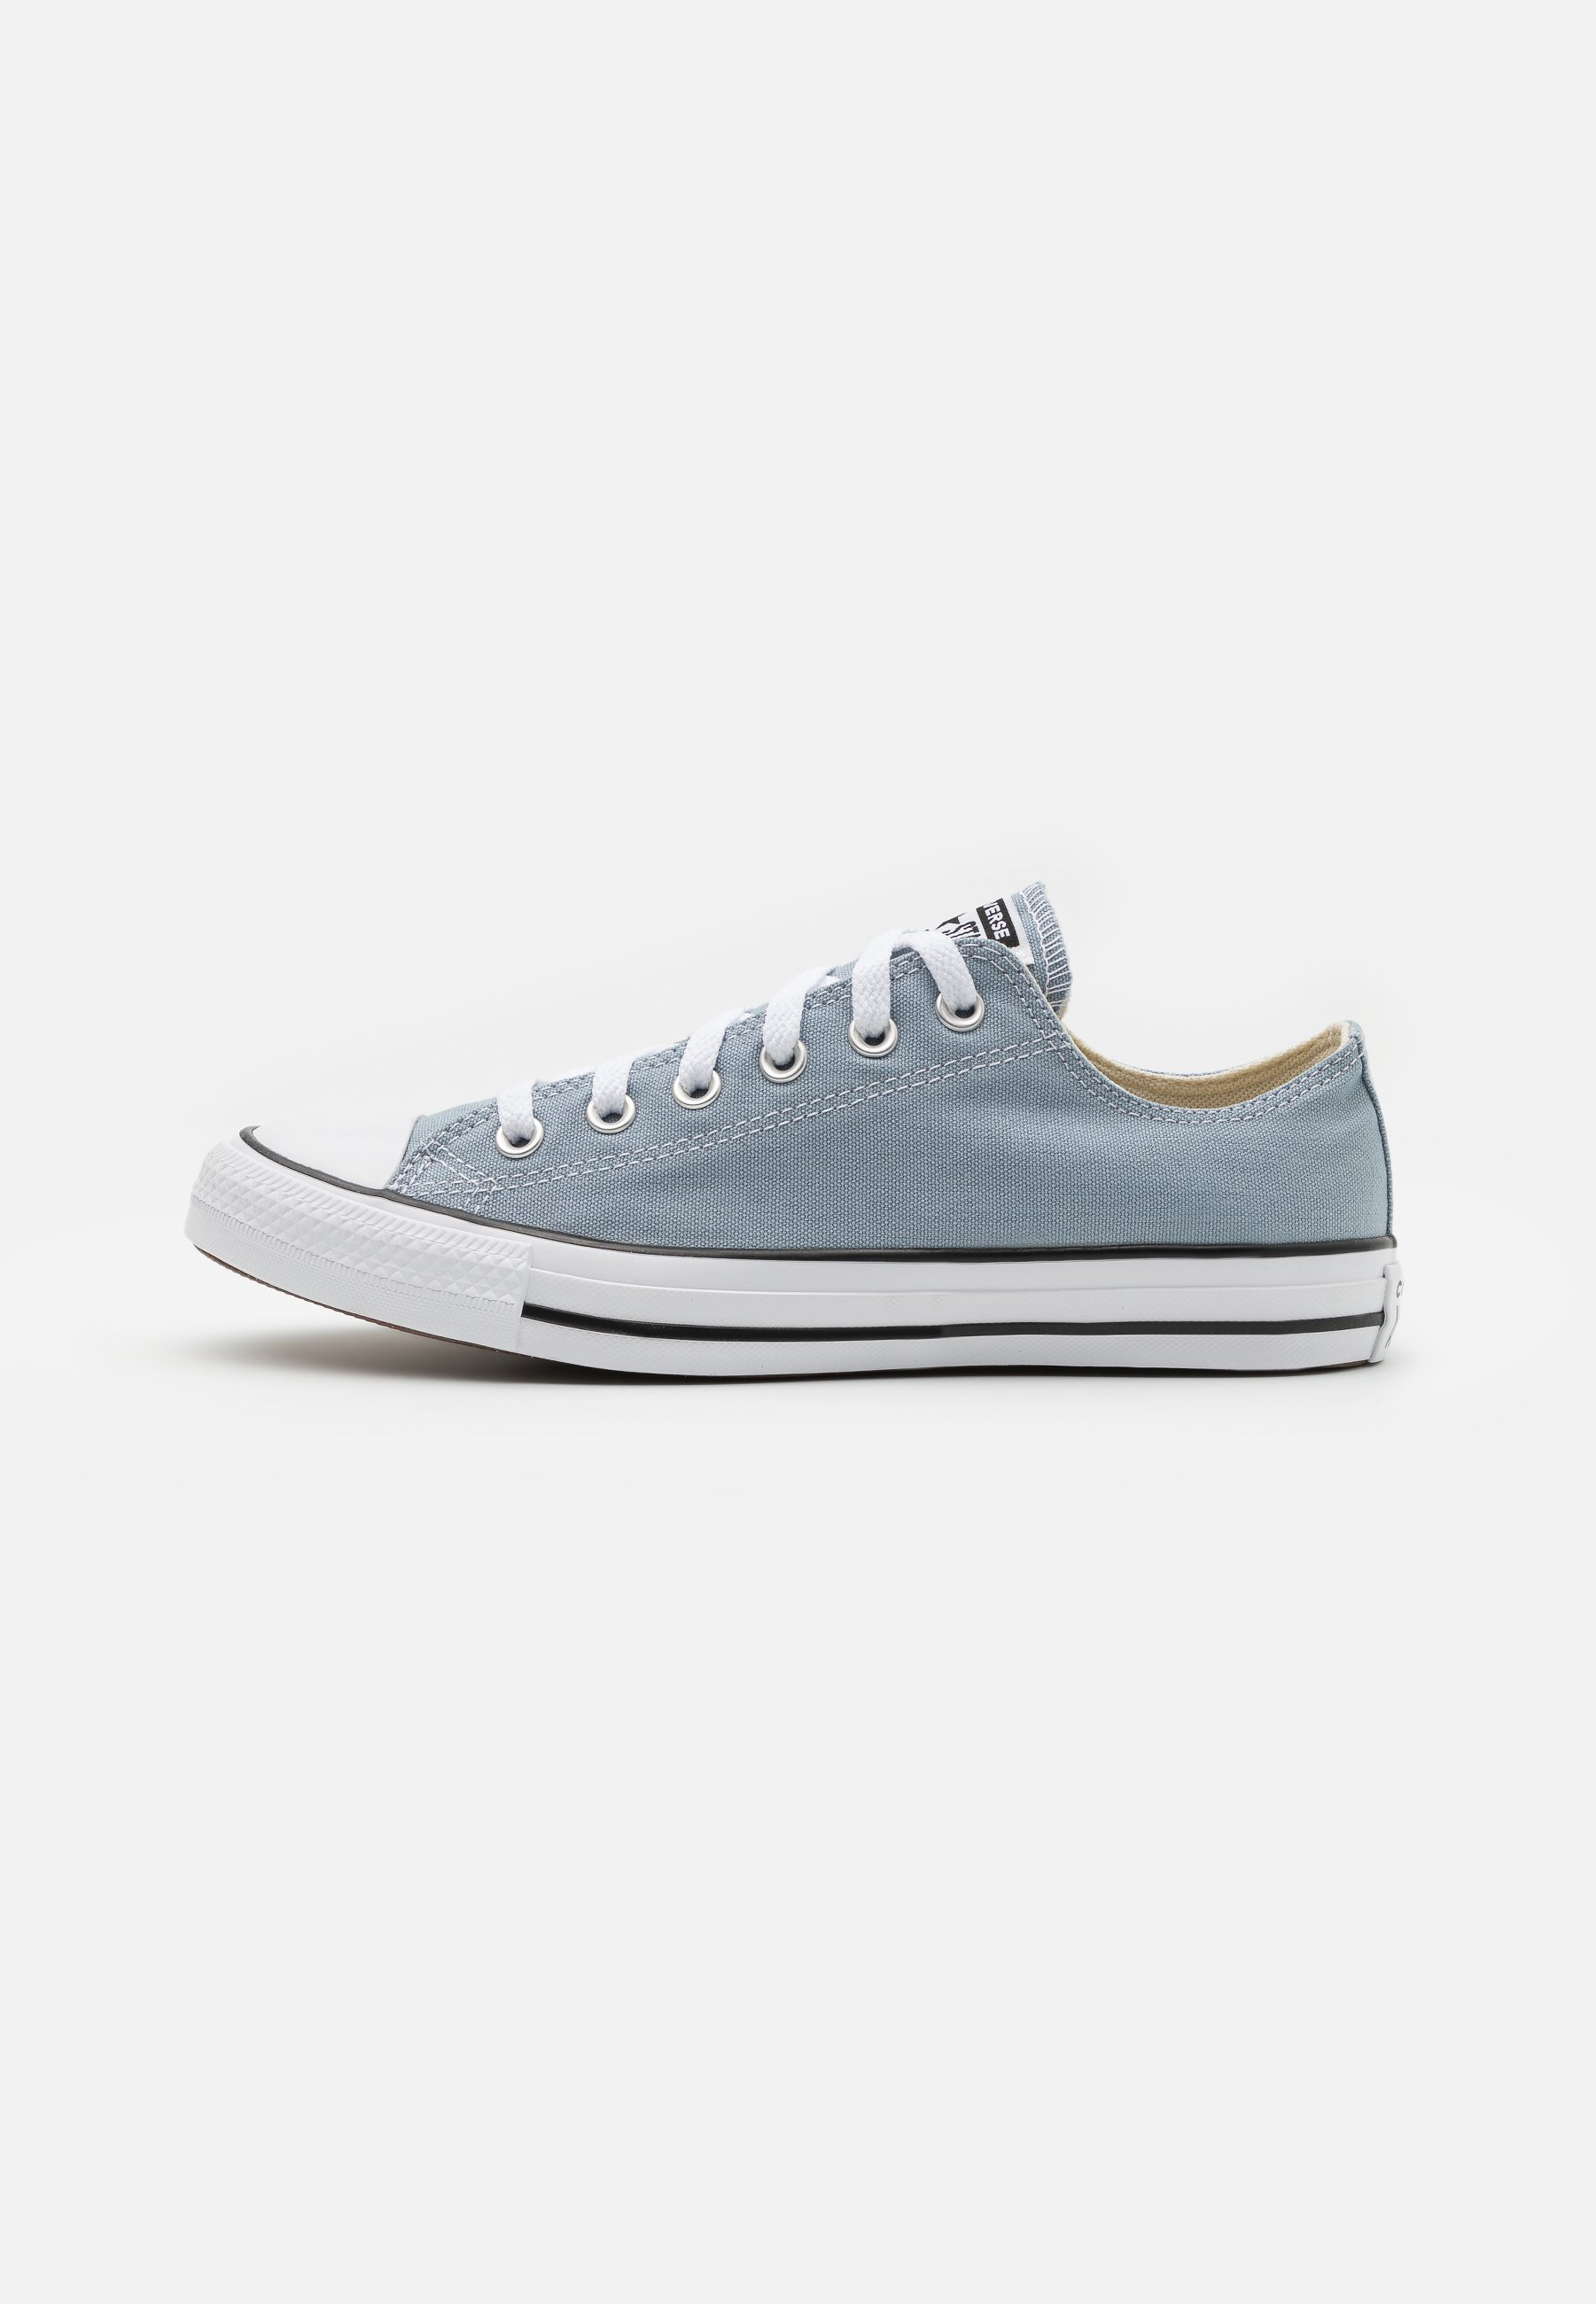 Men CHUCK TAYLOR ALL STAR SEASONAL COLOR UNISEX - Trainers